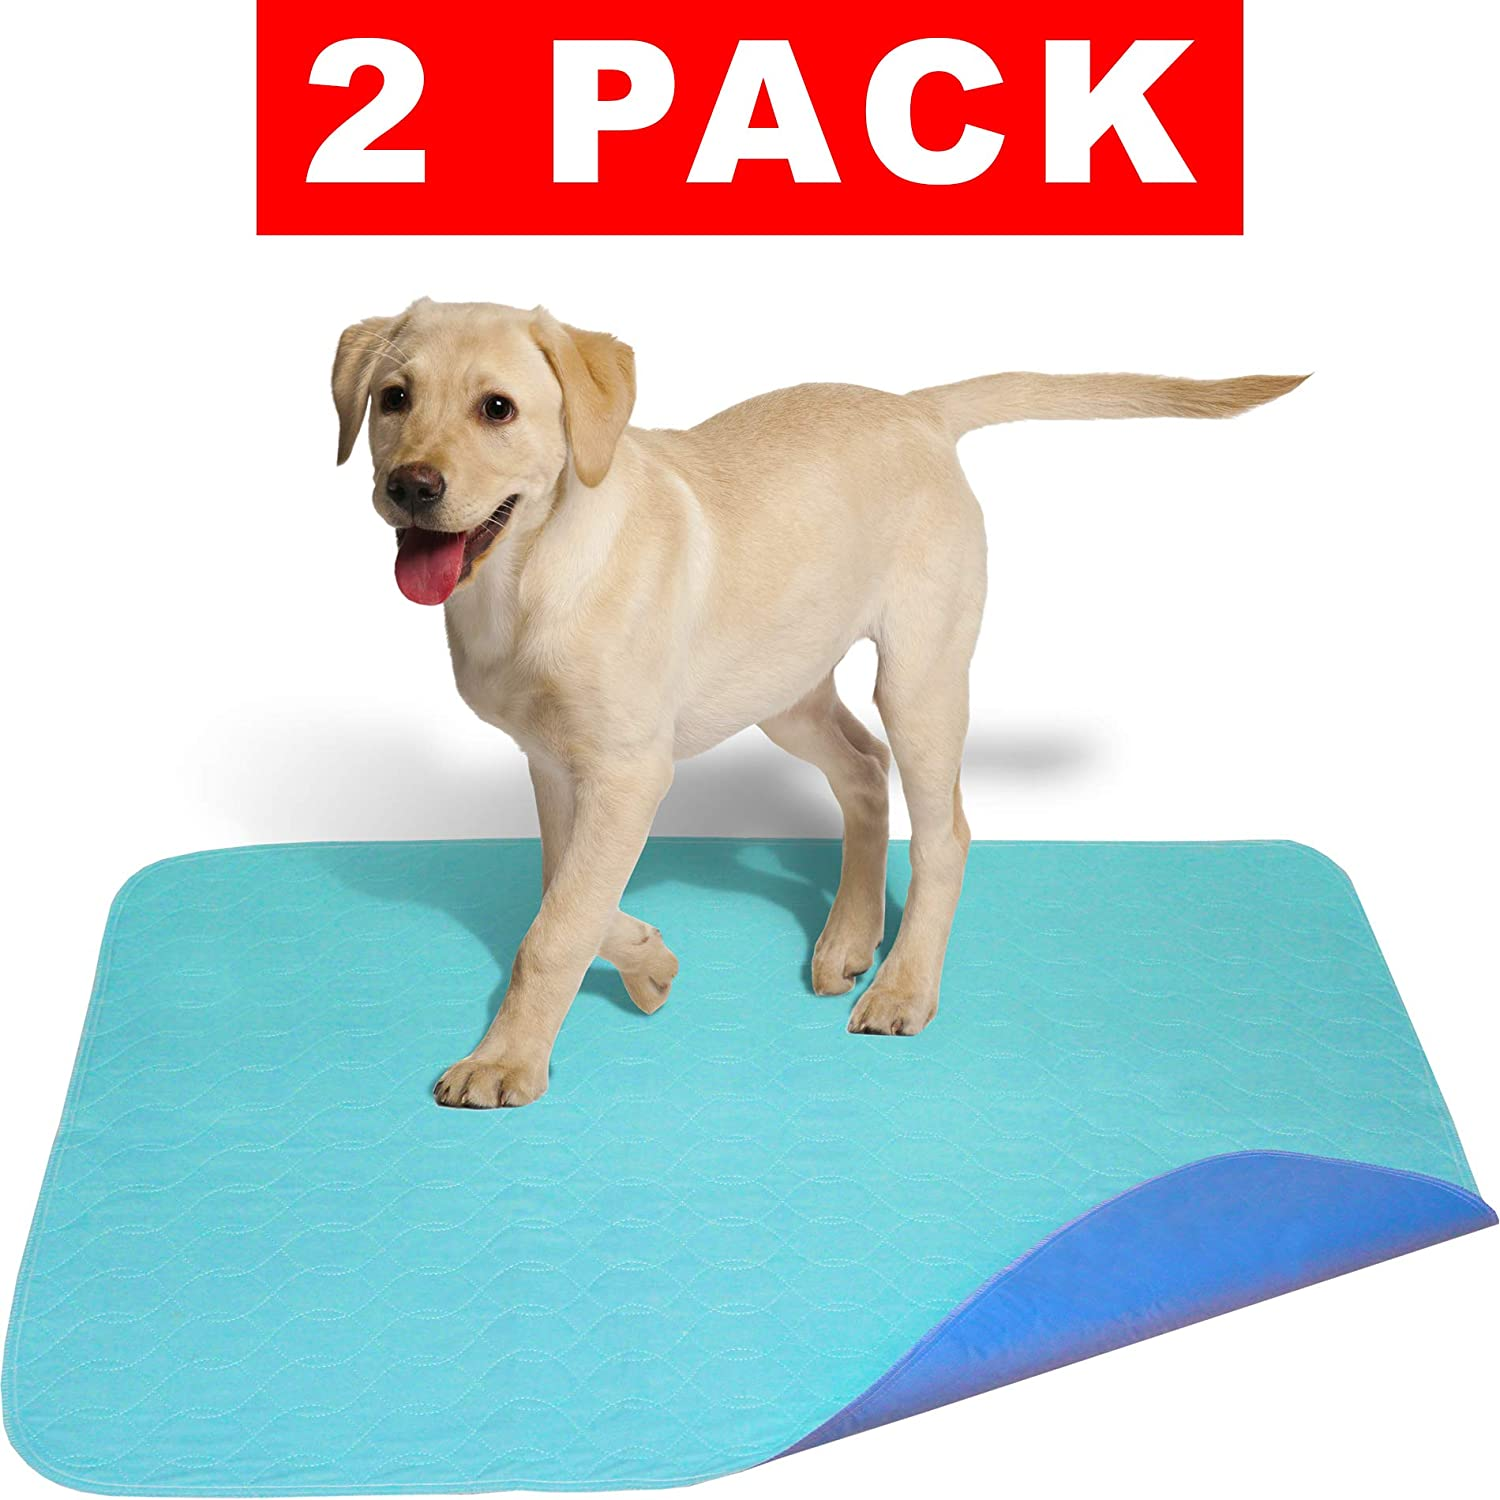 2 Pack Premium Waterproof Reusable   Quilted Washable Large Dog   Puppy Training Travel Pee Pads Size 34 x 36 by Careoutfit